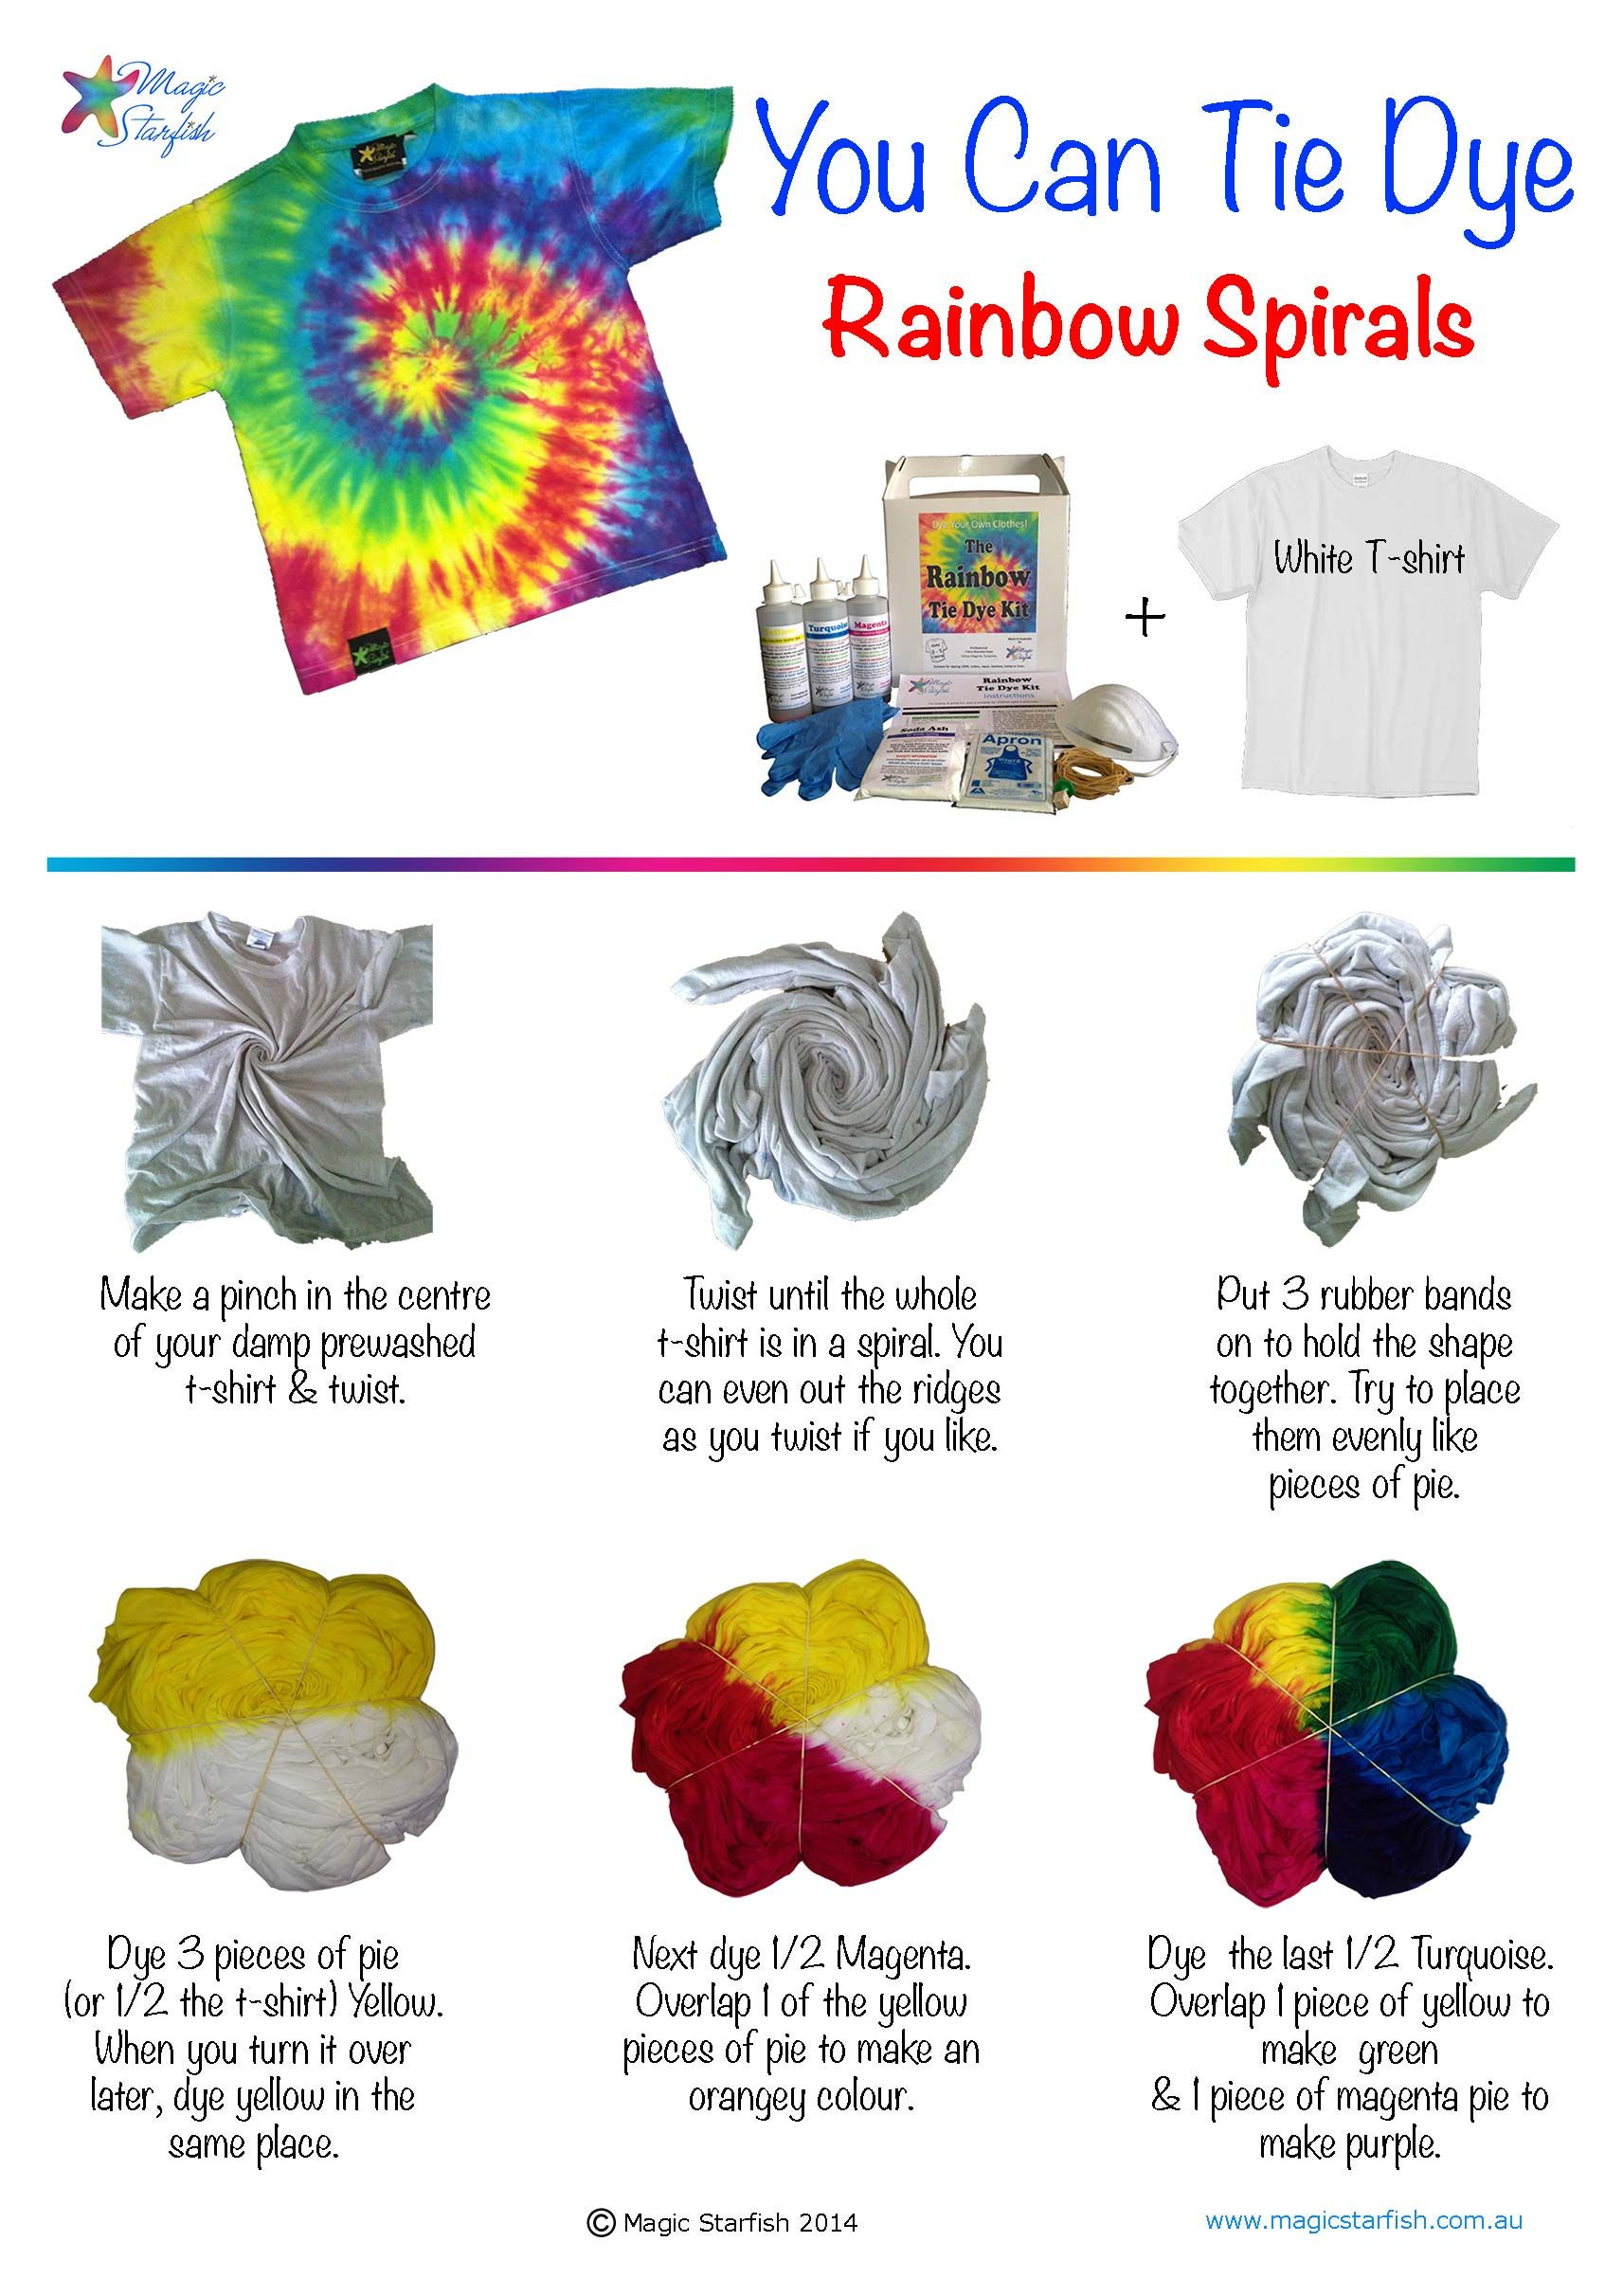 Fabulous image intended for tie dye instructions printable